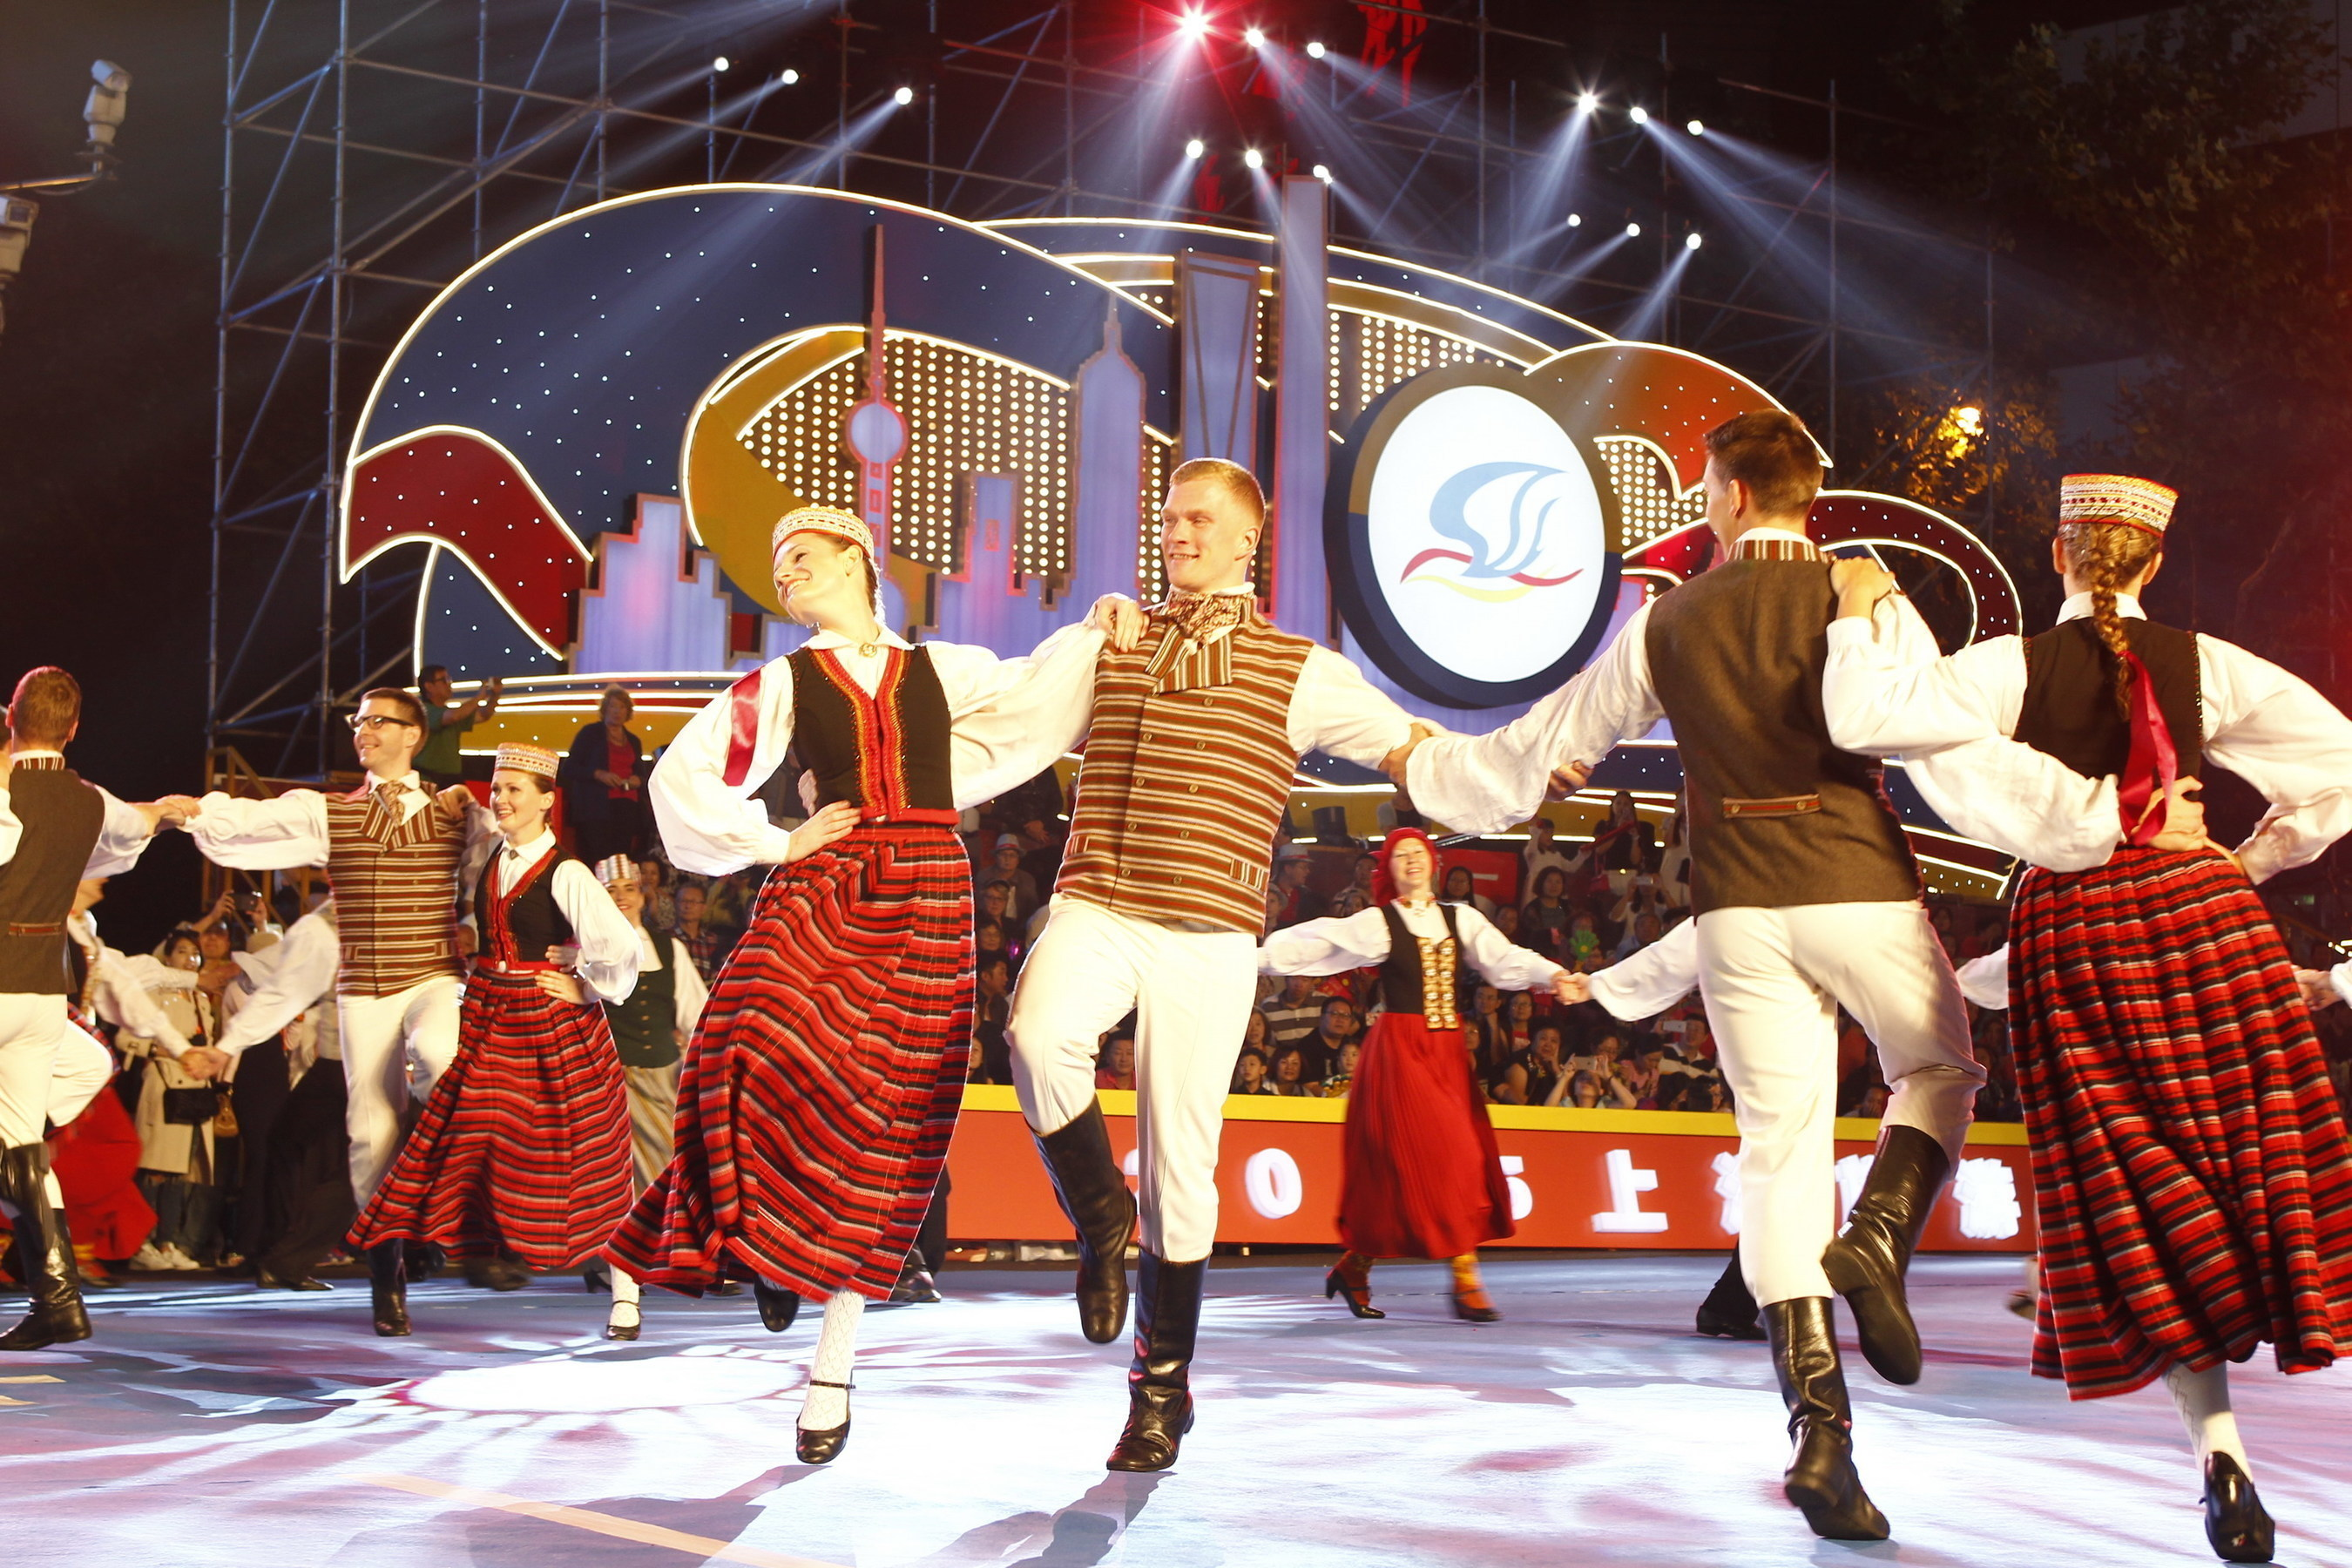 The folk dance performance group from Latvia